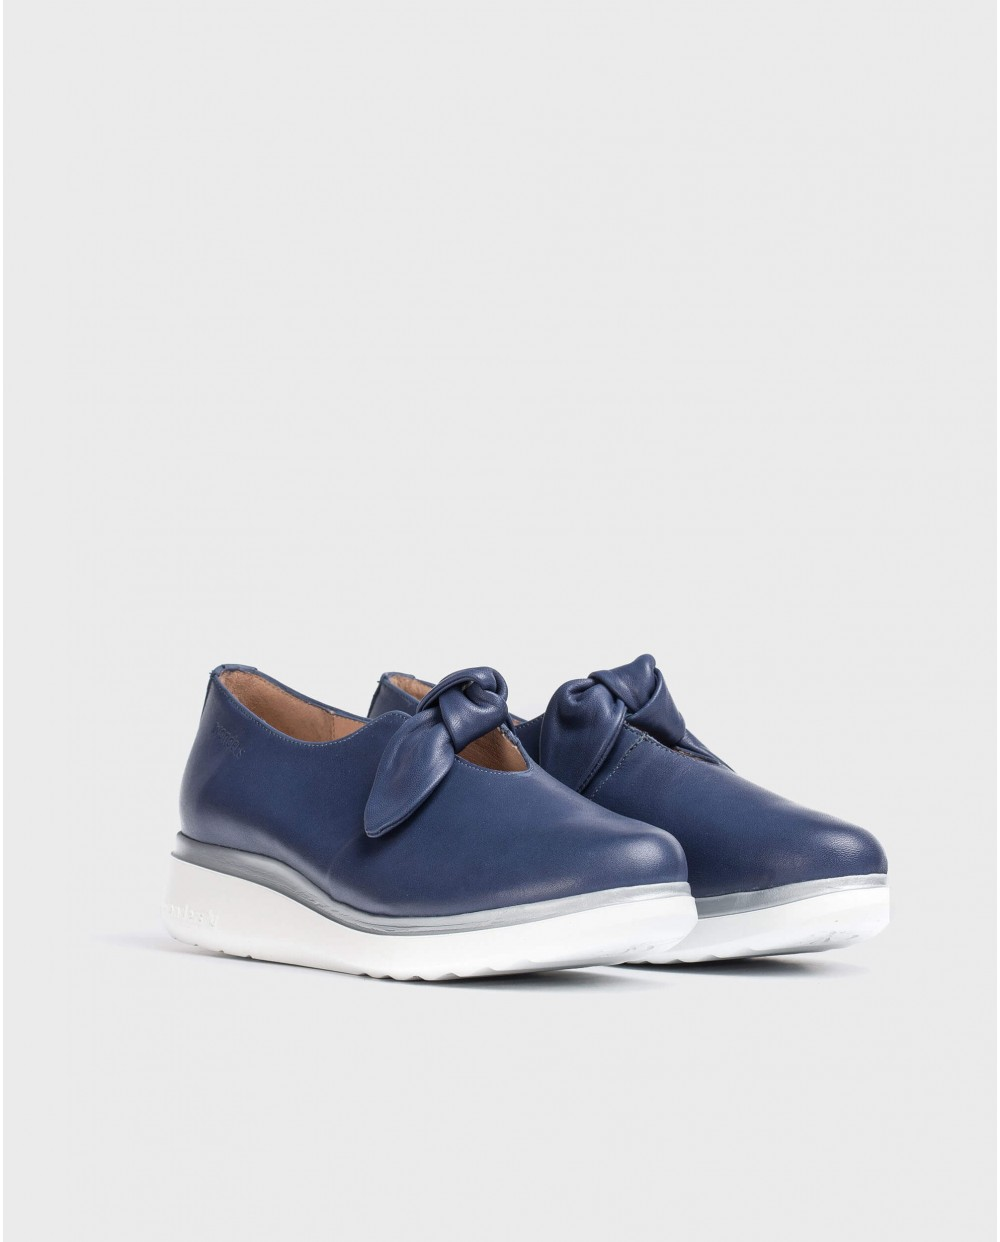 Wonders-Flat Shoes-Moccasins with bow detail